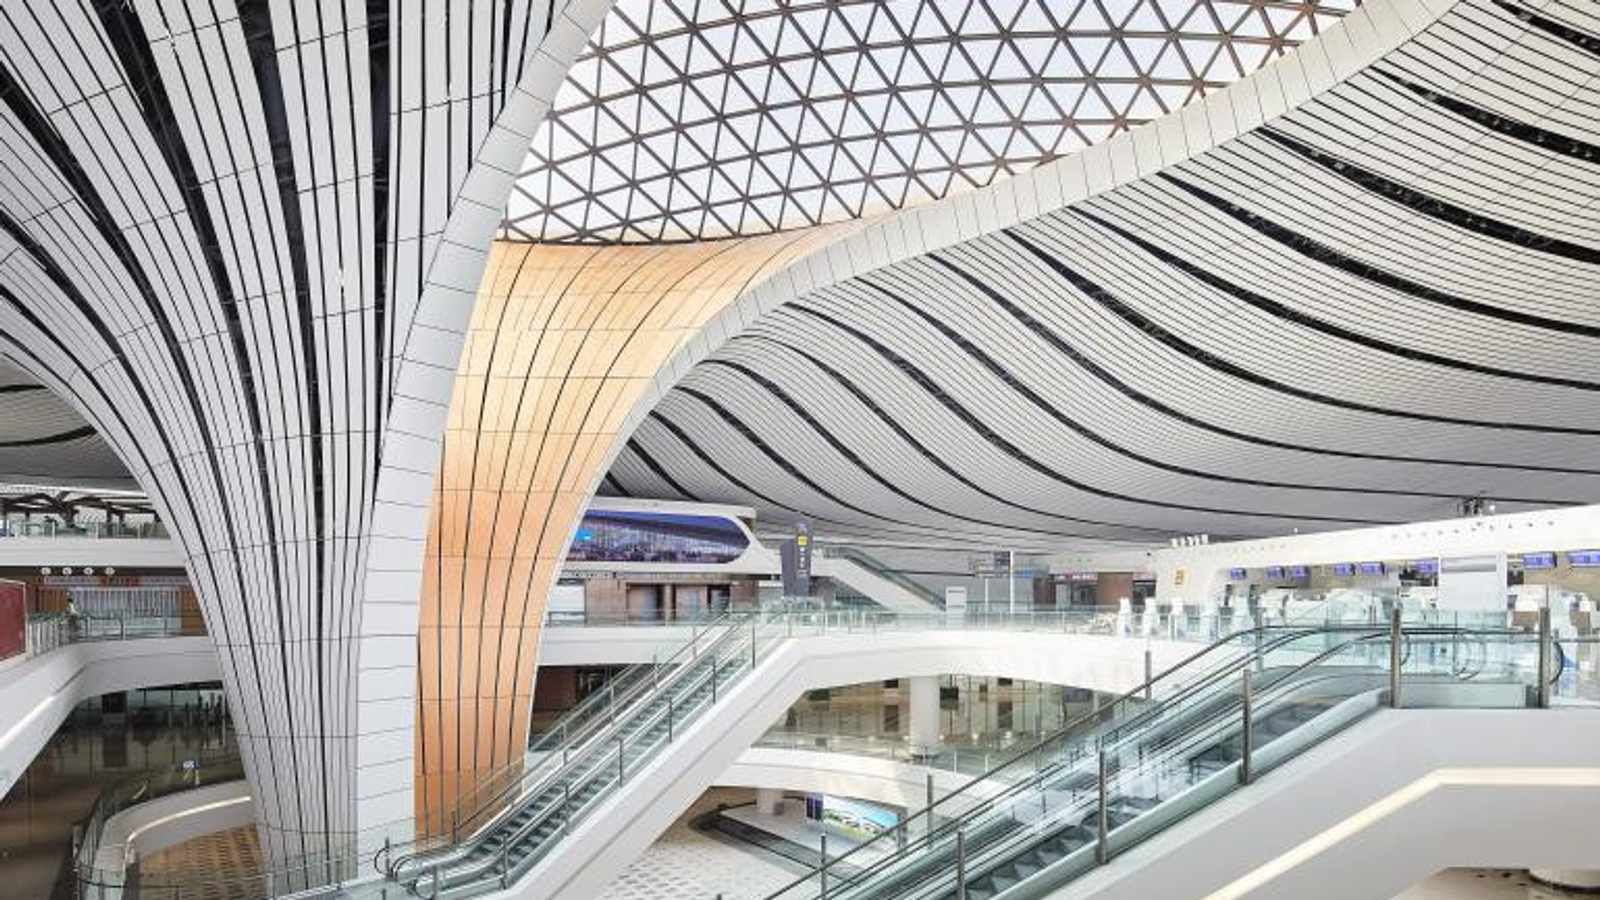 Zaha Hadid's Stunning Beijing Daxing International Airport Is Finally Completed